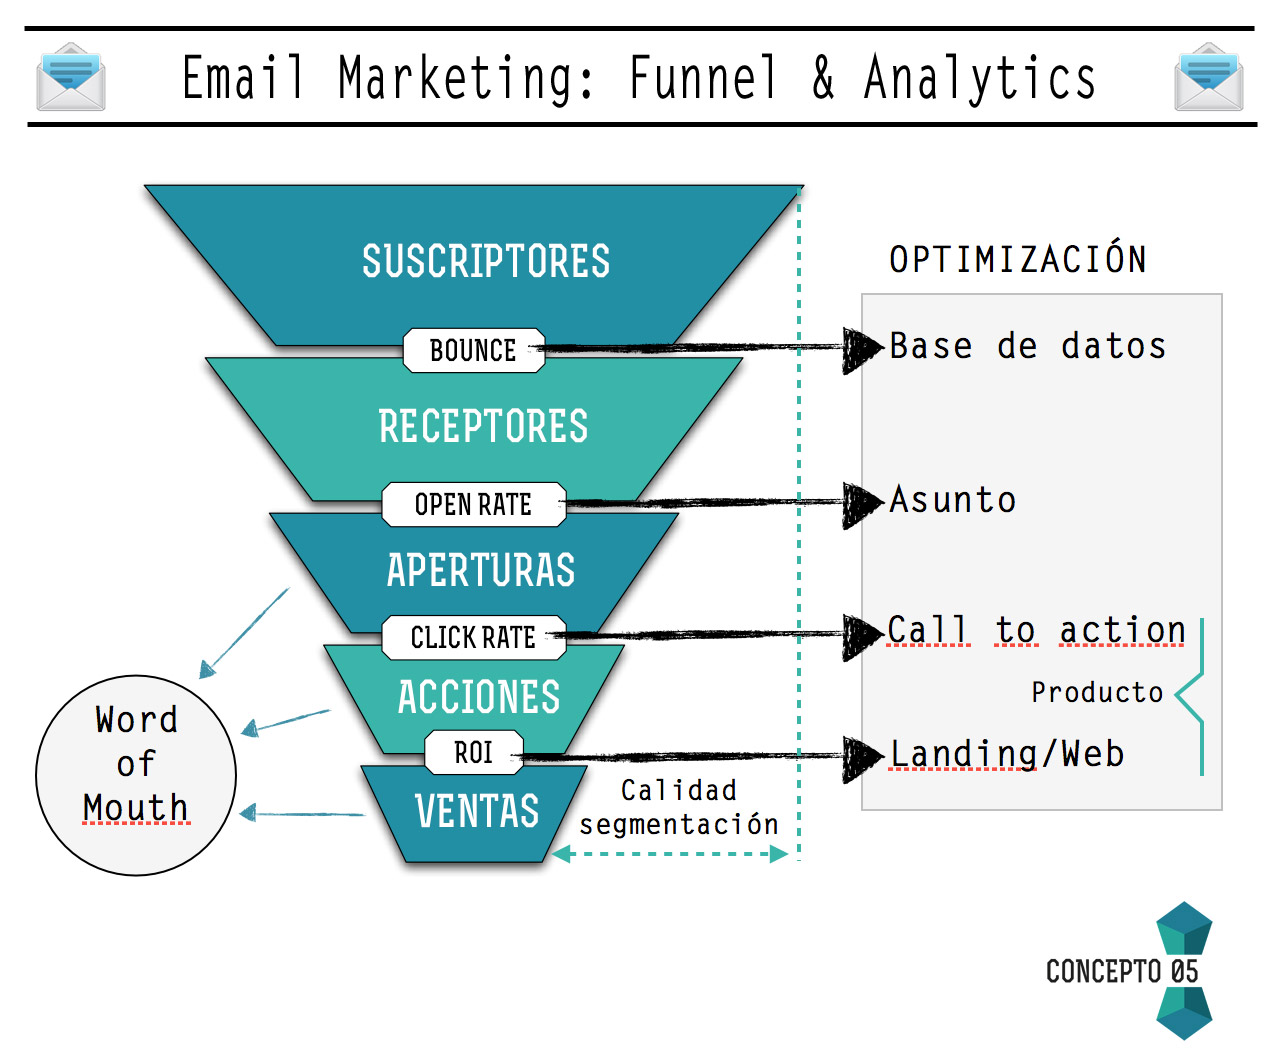 Email Marketing: Funnel & Analytics